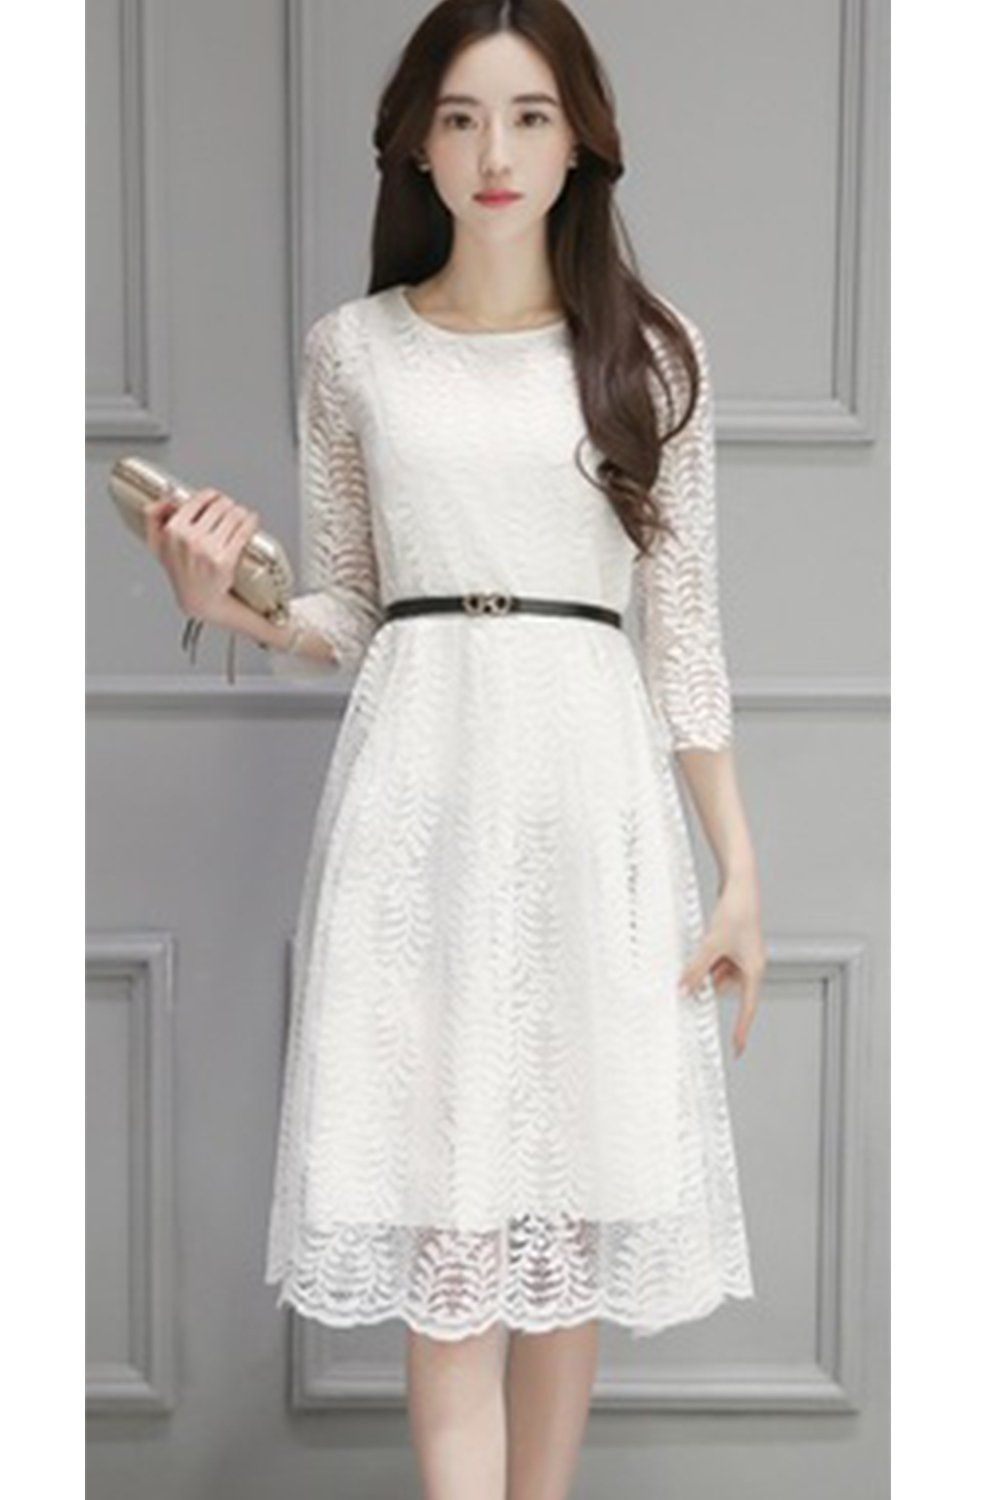 ac1d2da4adb Zumeet Women Decorated Fern Leaves Party Lace Dress White Small White --  Continue to the product at the image link. (This is an affiliate link)   ...